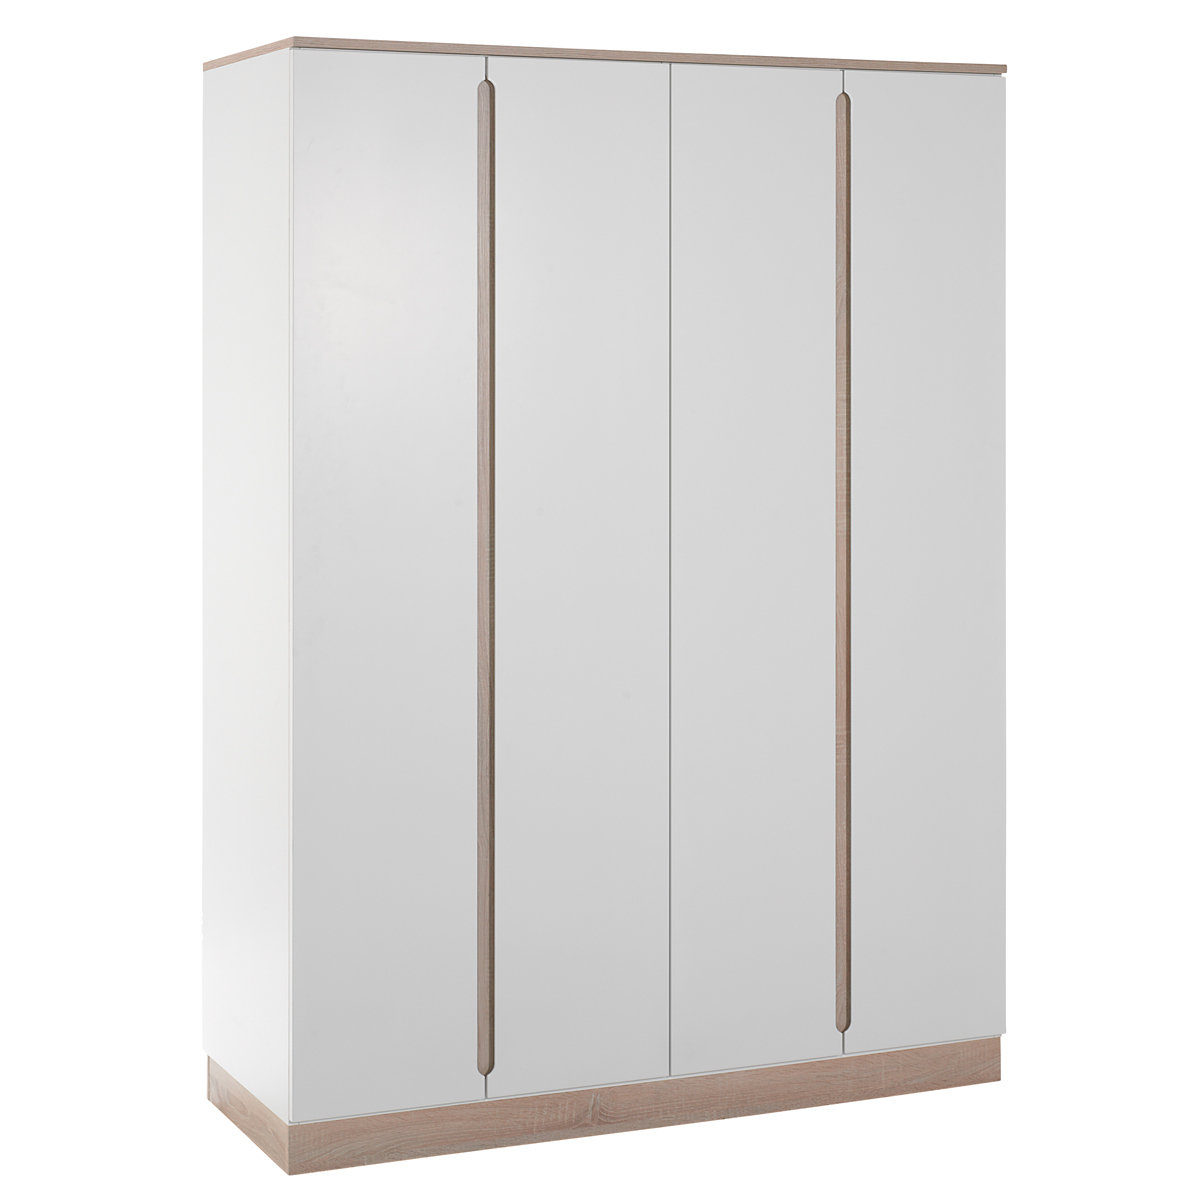 Geuther Armoire 4 Portes Collection United Armoire